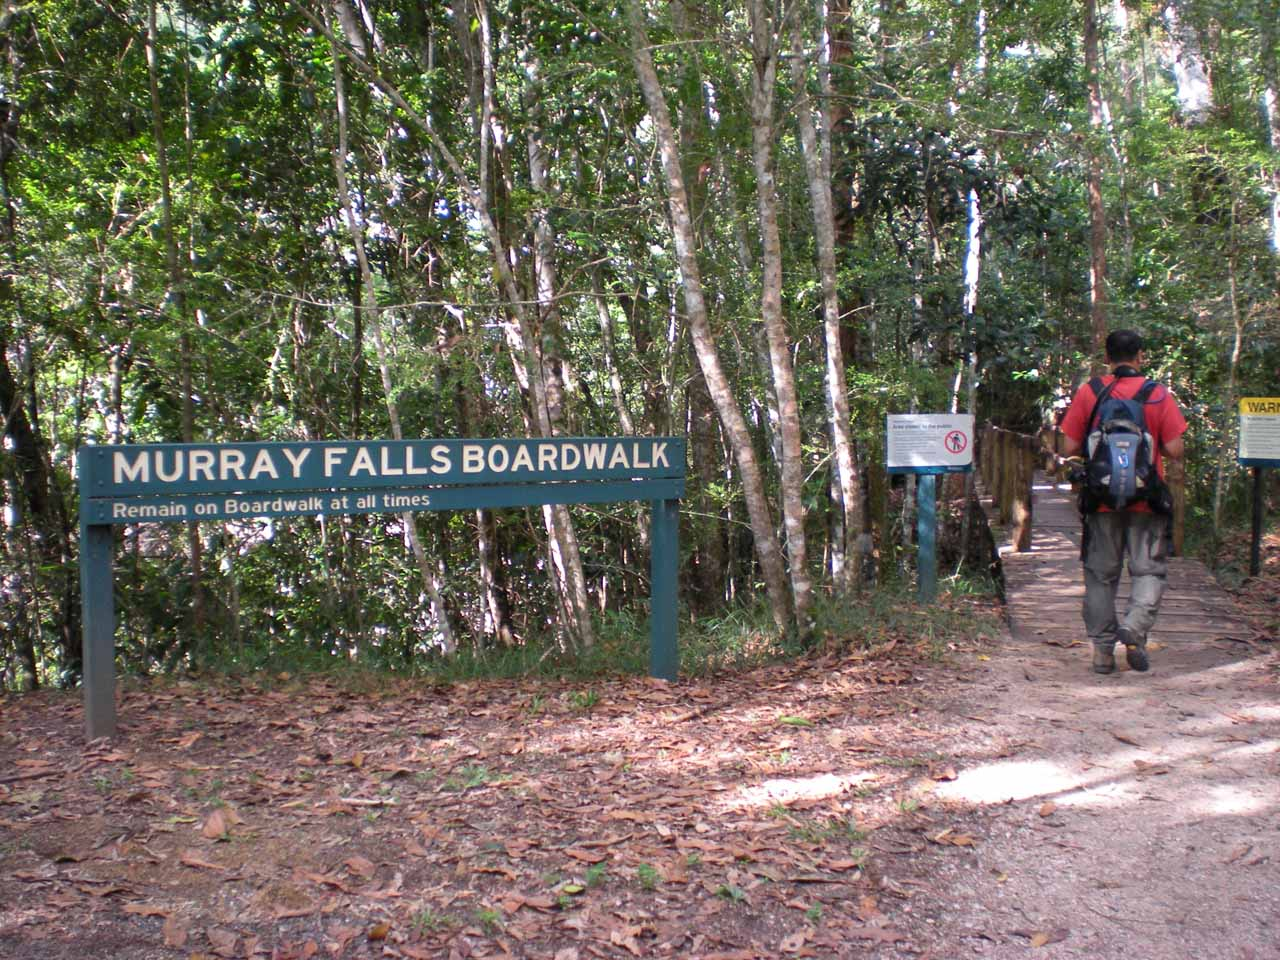 That's me going on the boardwalk to Murray Falls